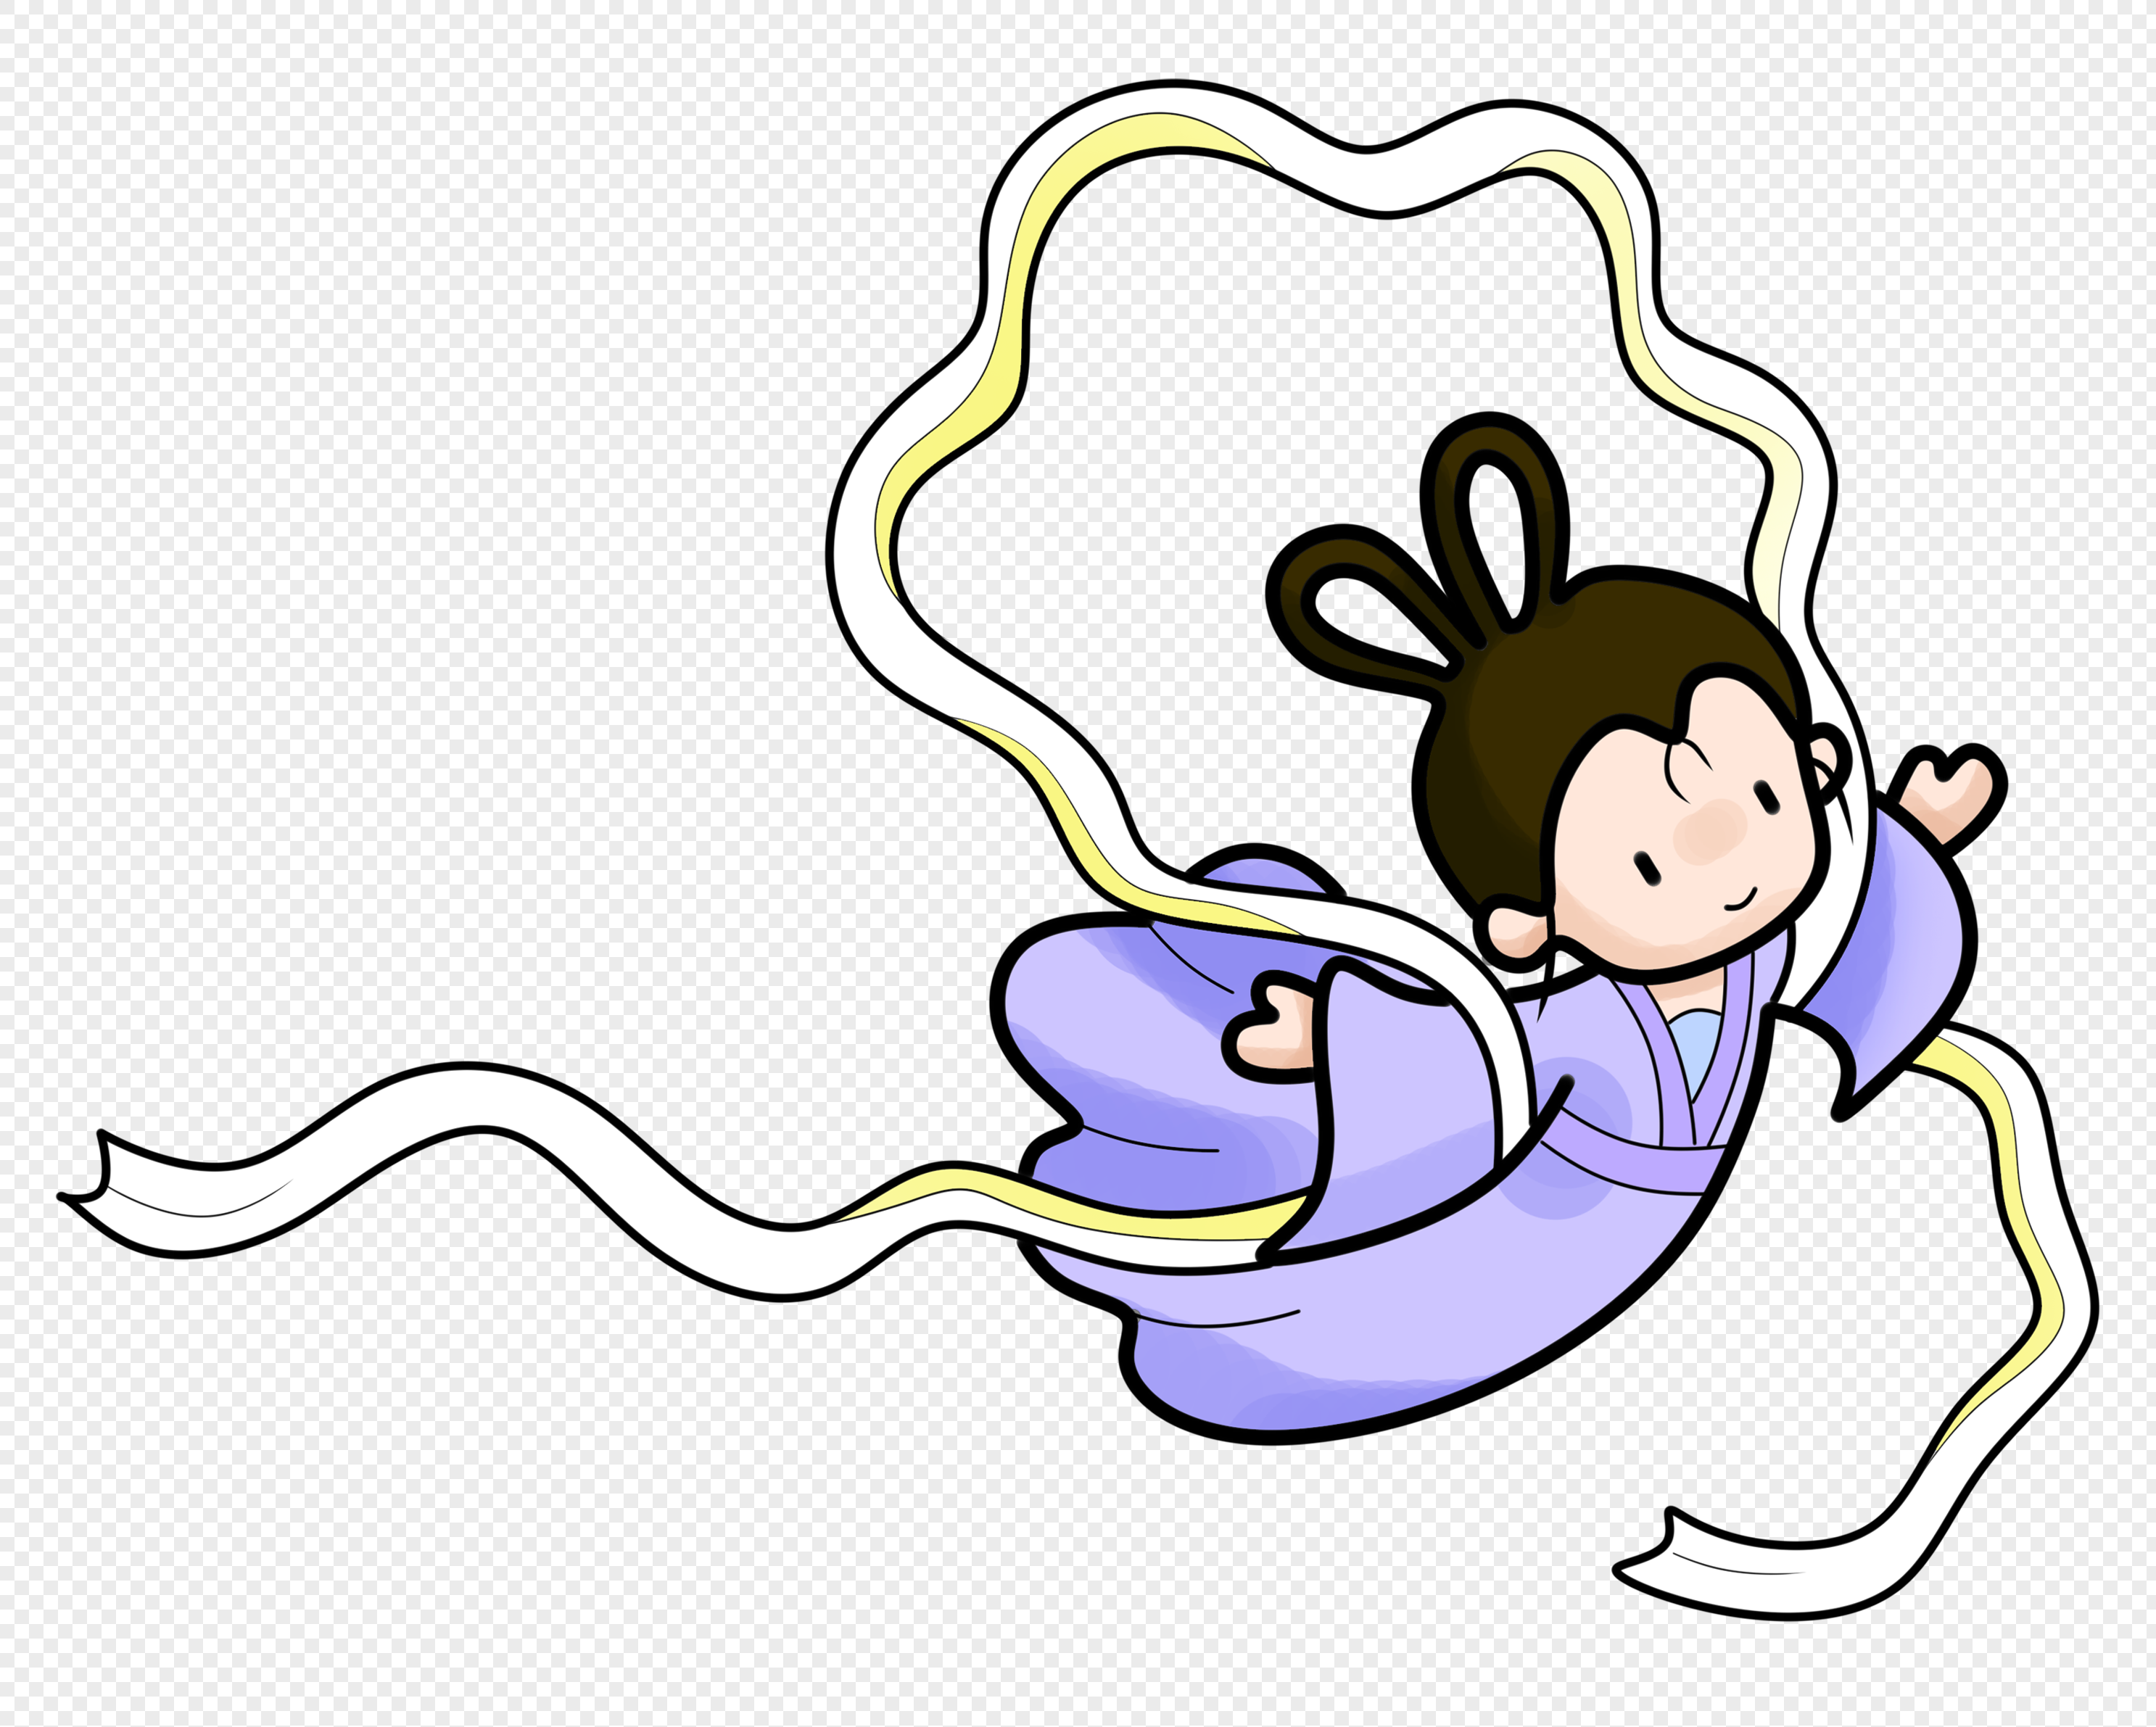 the mid autumn festival cartoon chang e png image picture free